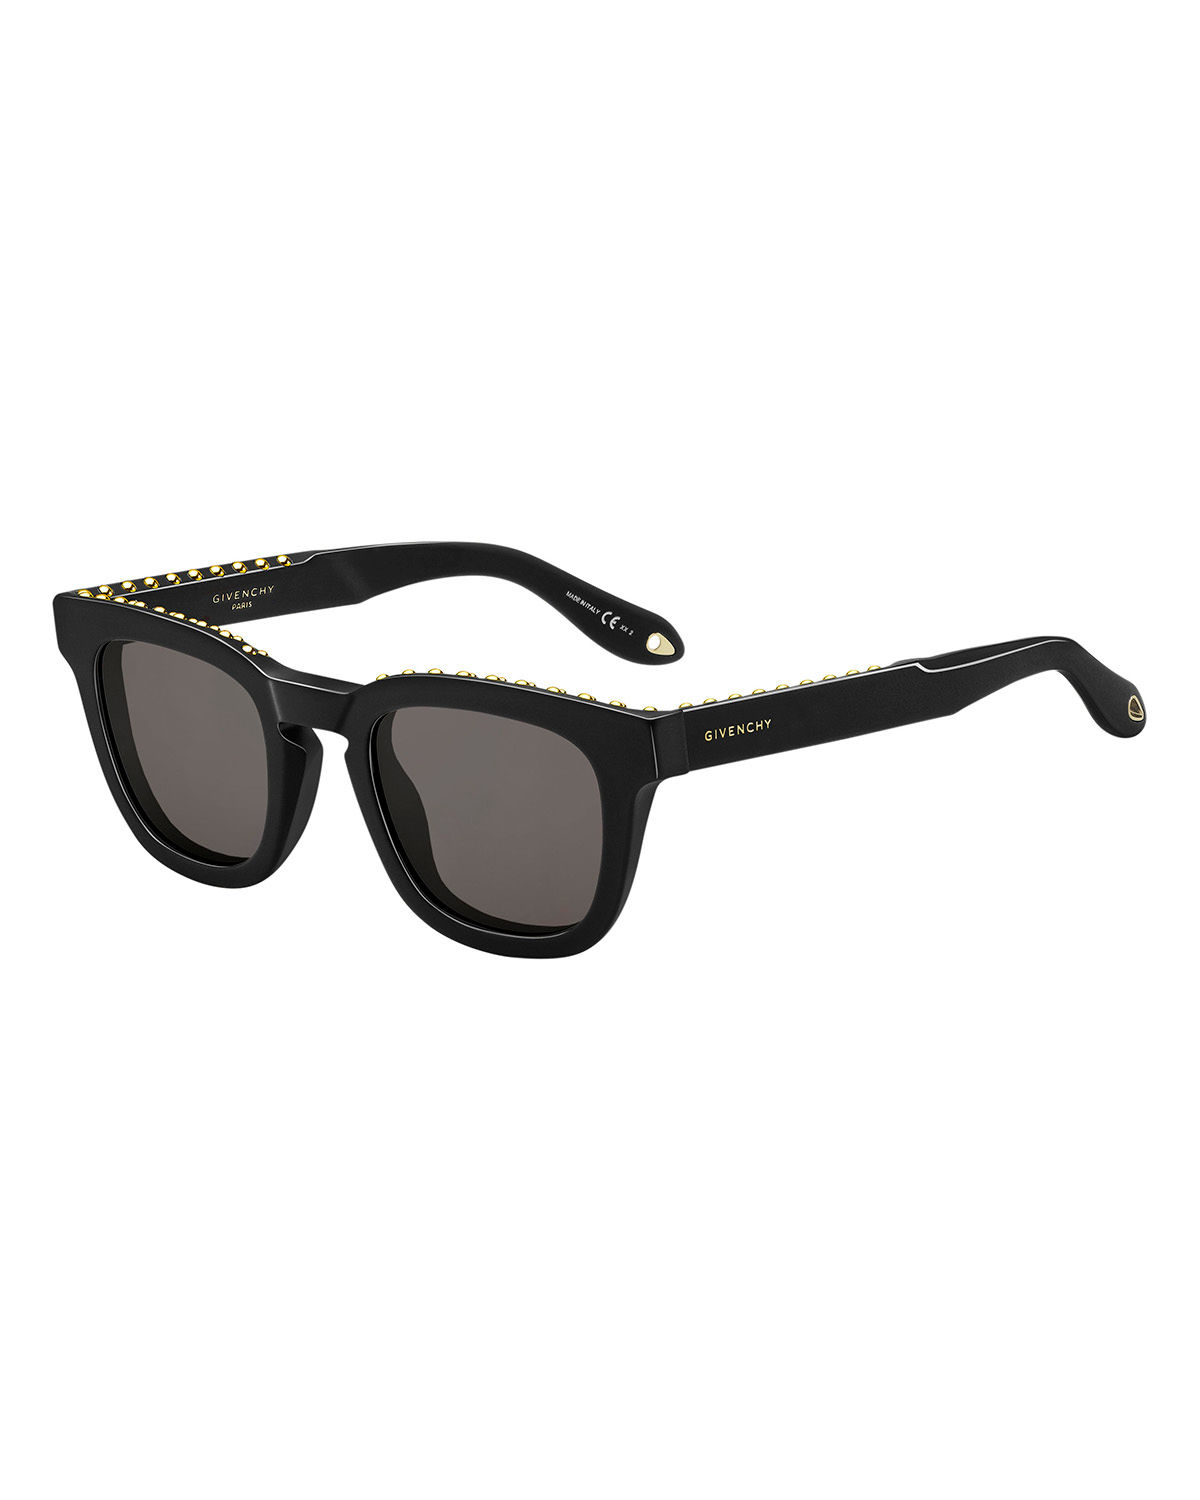 891252b7ad Givenchy Studded Square Sunglasses